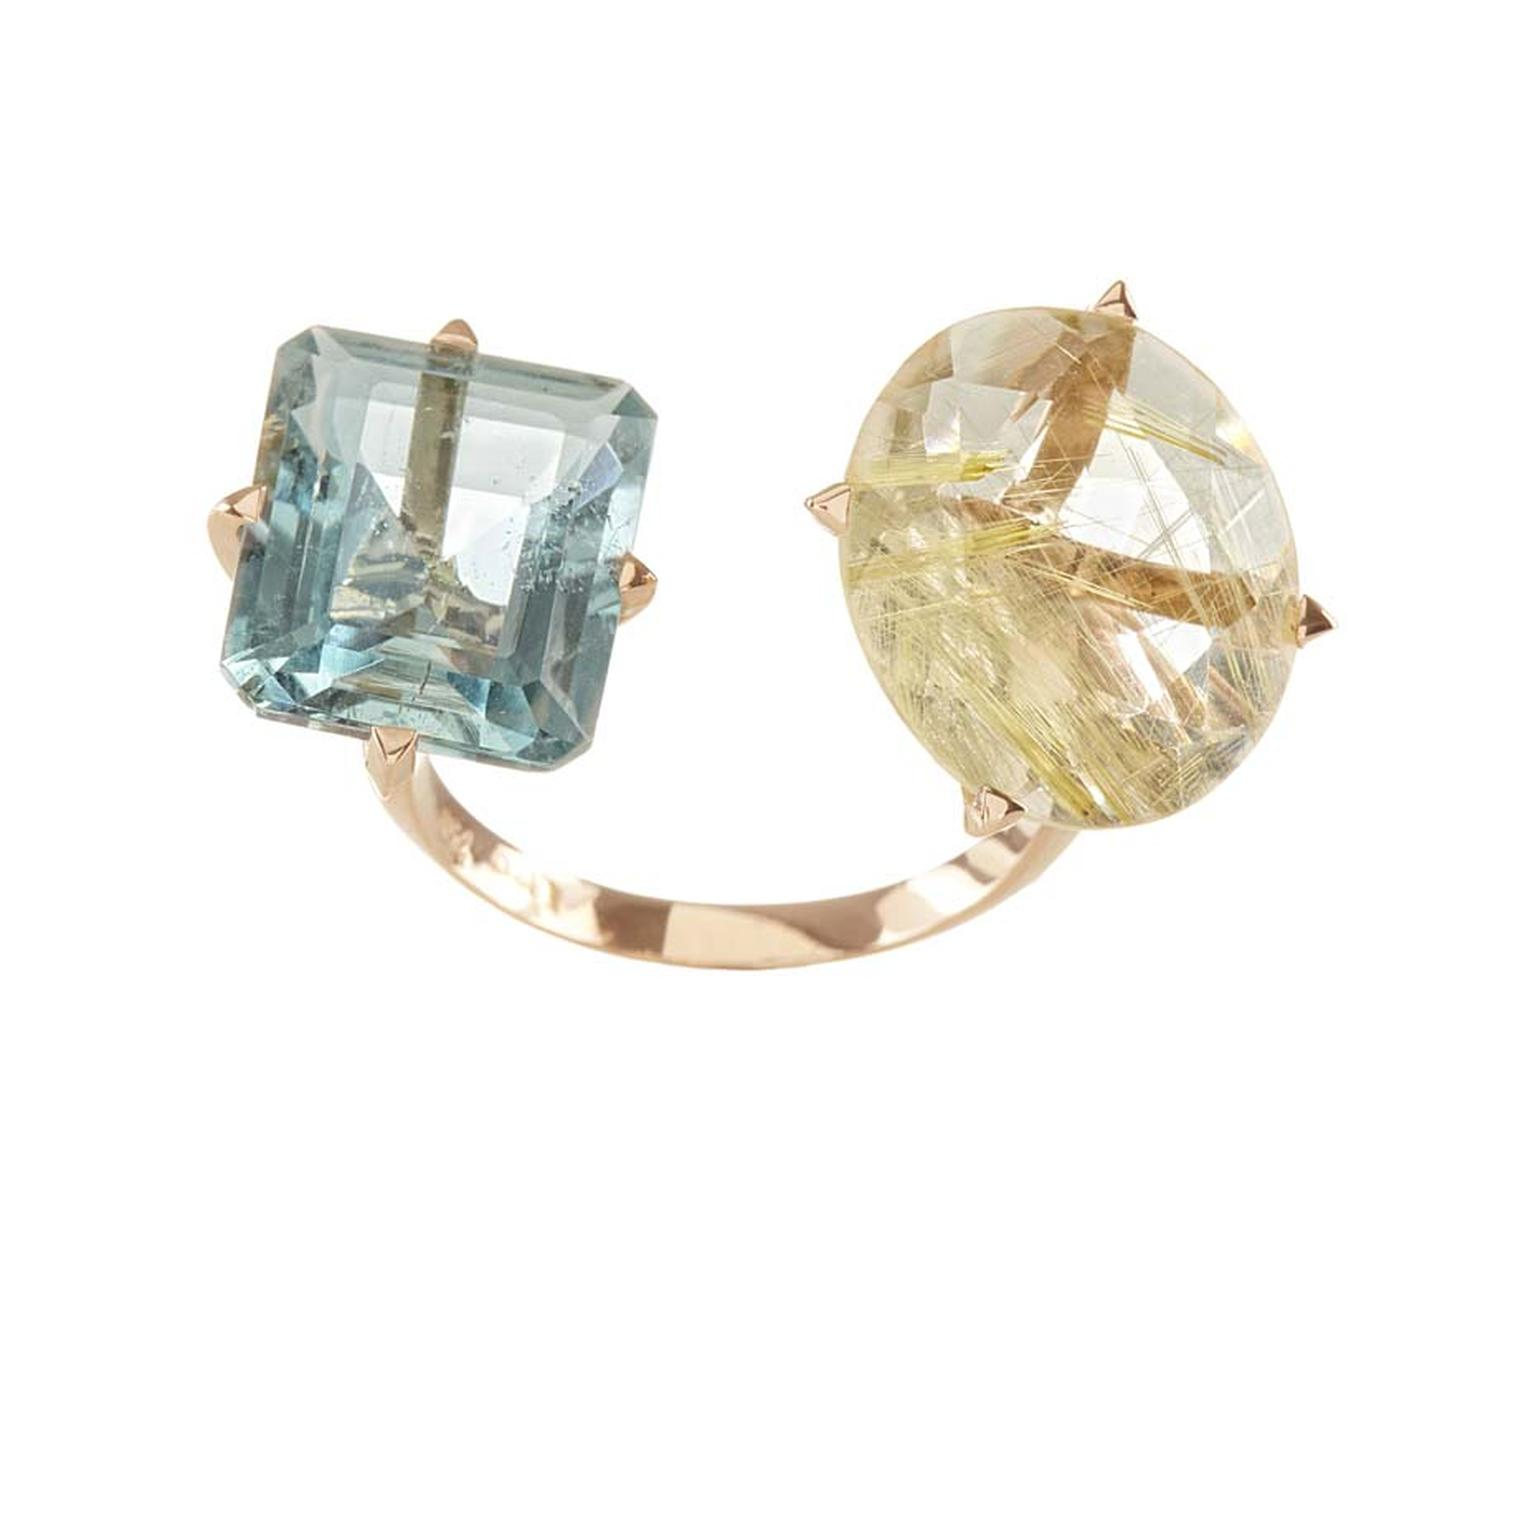 Lito pink gold ring, set with an octagon-cut aquamarine and oval-cut rutilated quartz